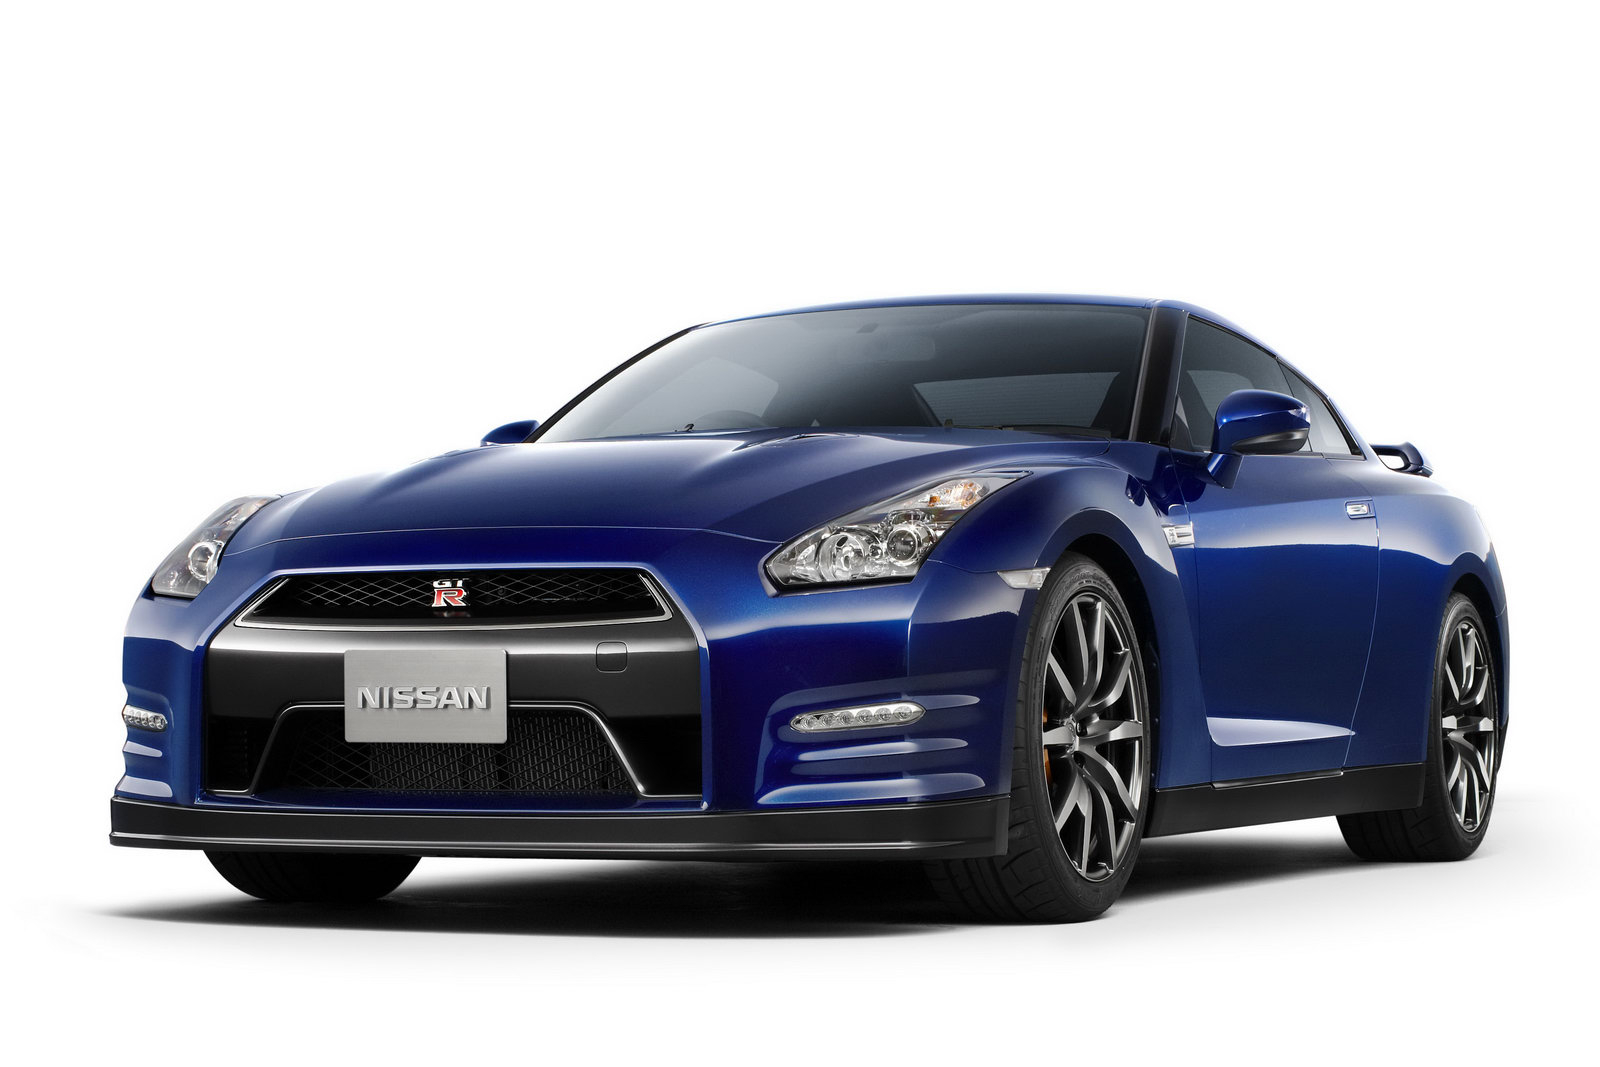 Nissan Gtr 32 Free Car Wallpaper